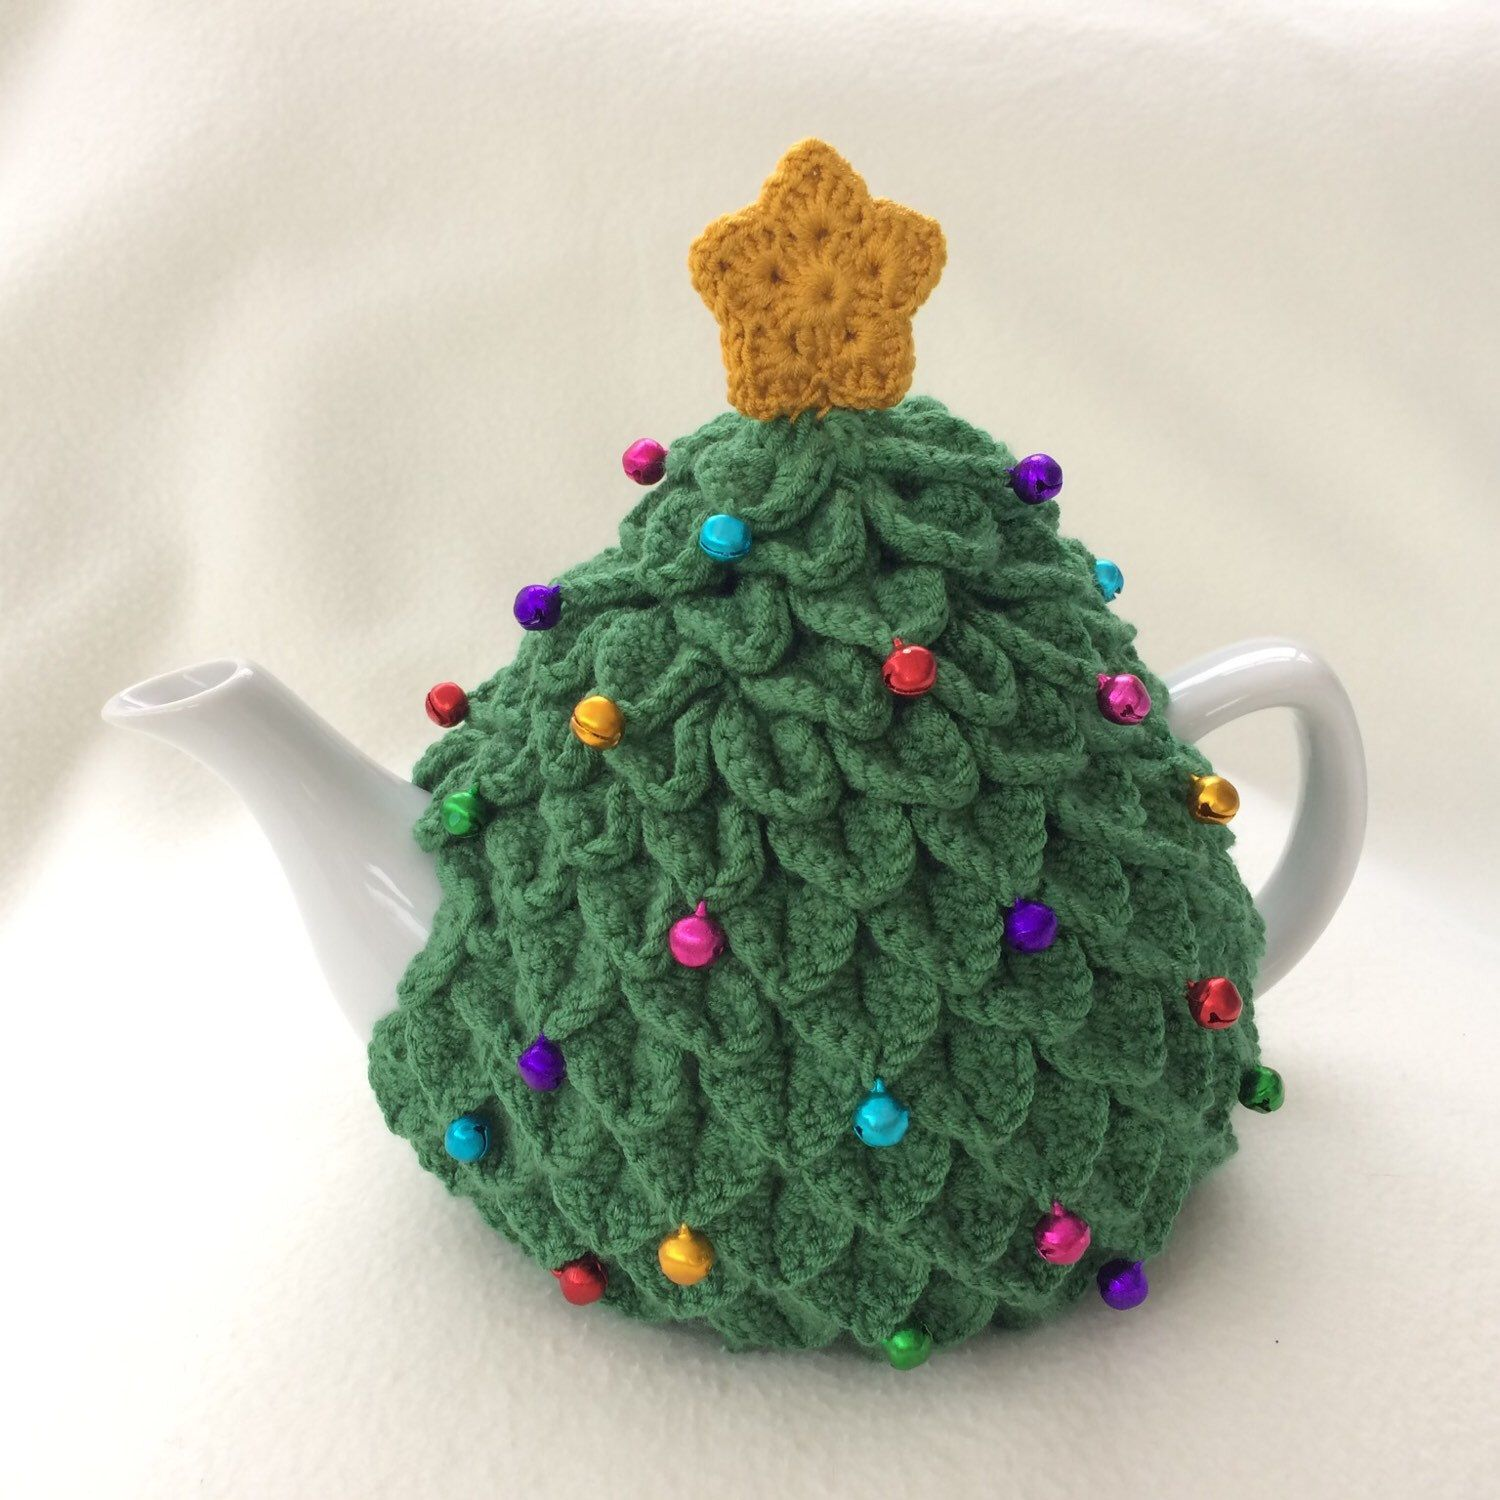 Another Version Of My Christmas Tree Tea Cosy This Time In A Pine Green Colour With A Darker Yellow Star In 2020 Knitted Tea Cosies Crochet Tea Cozy Tea Cosy Crochet